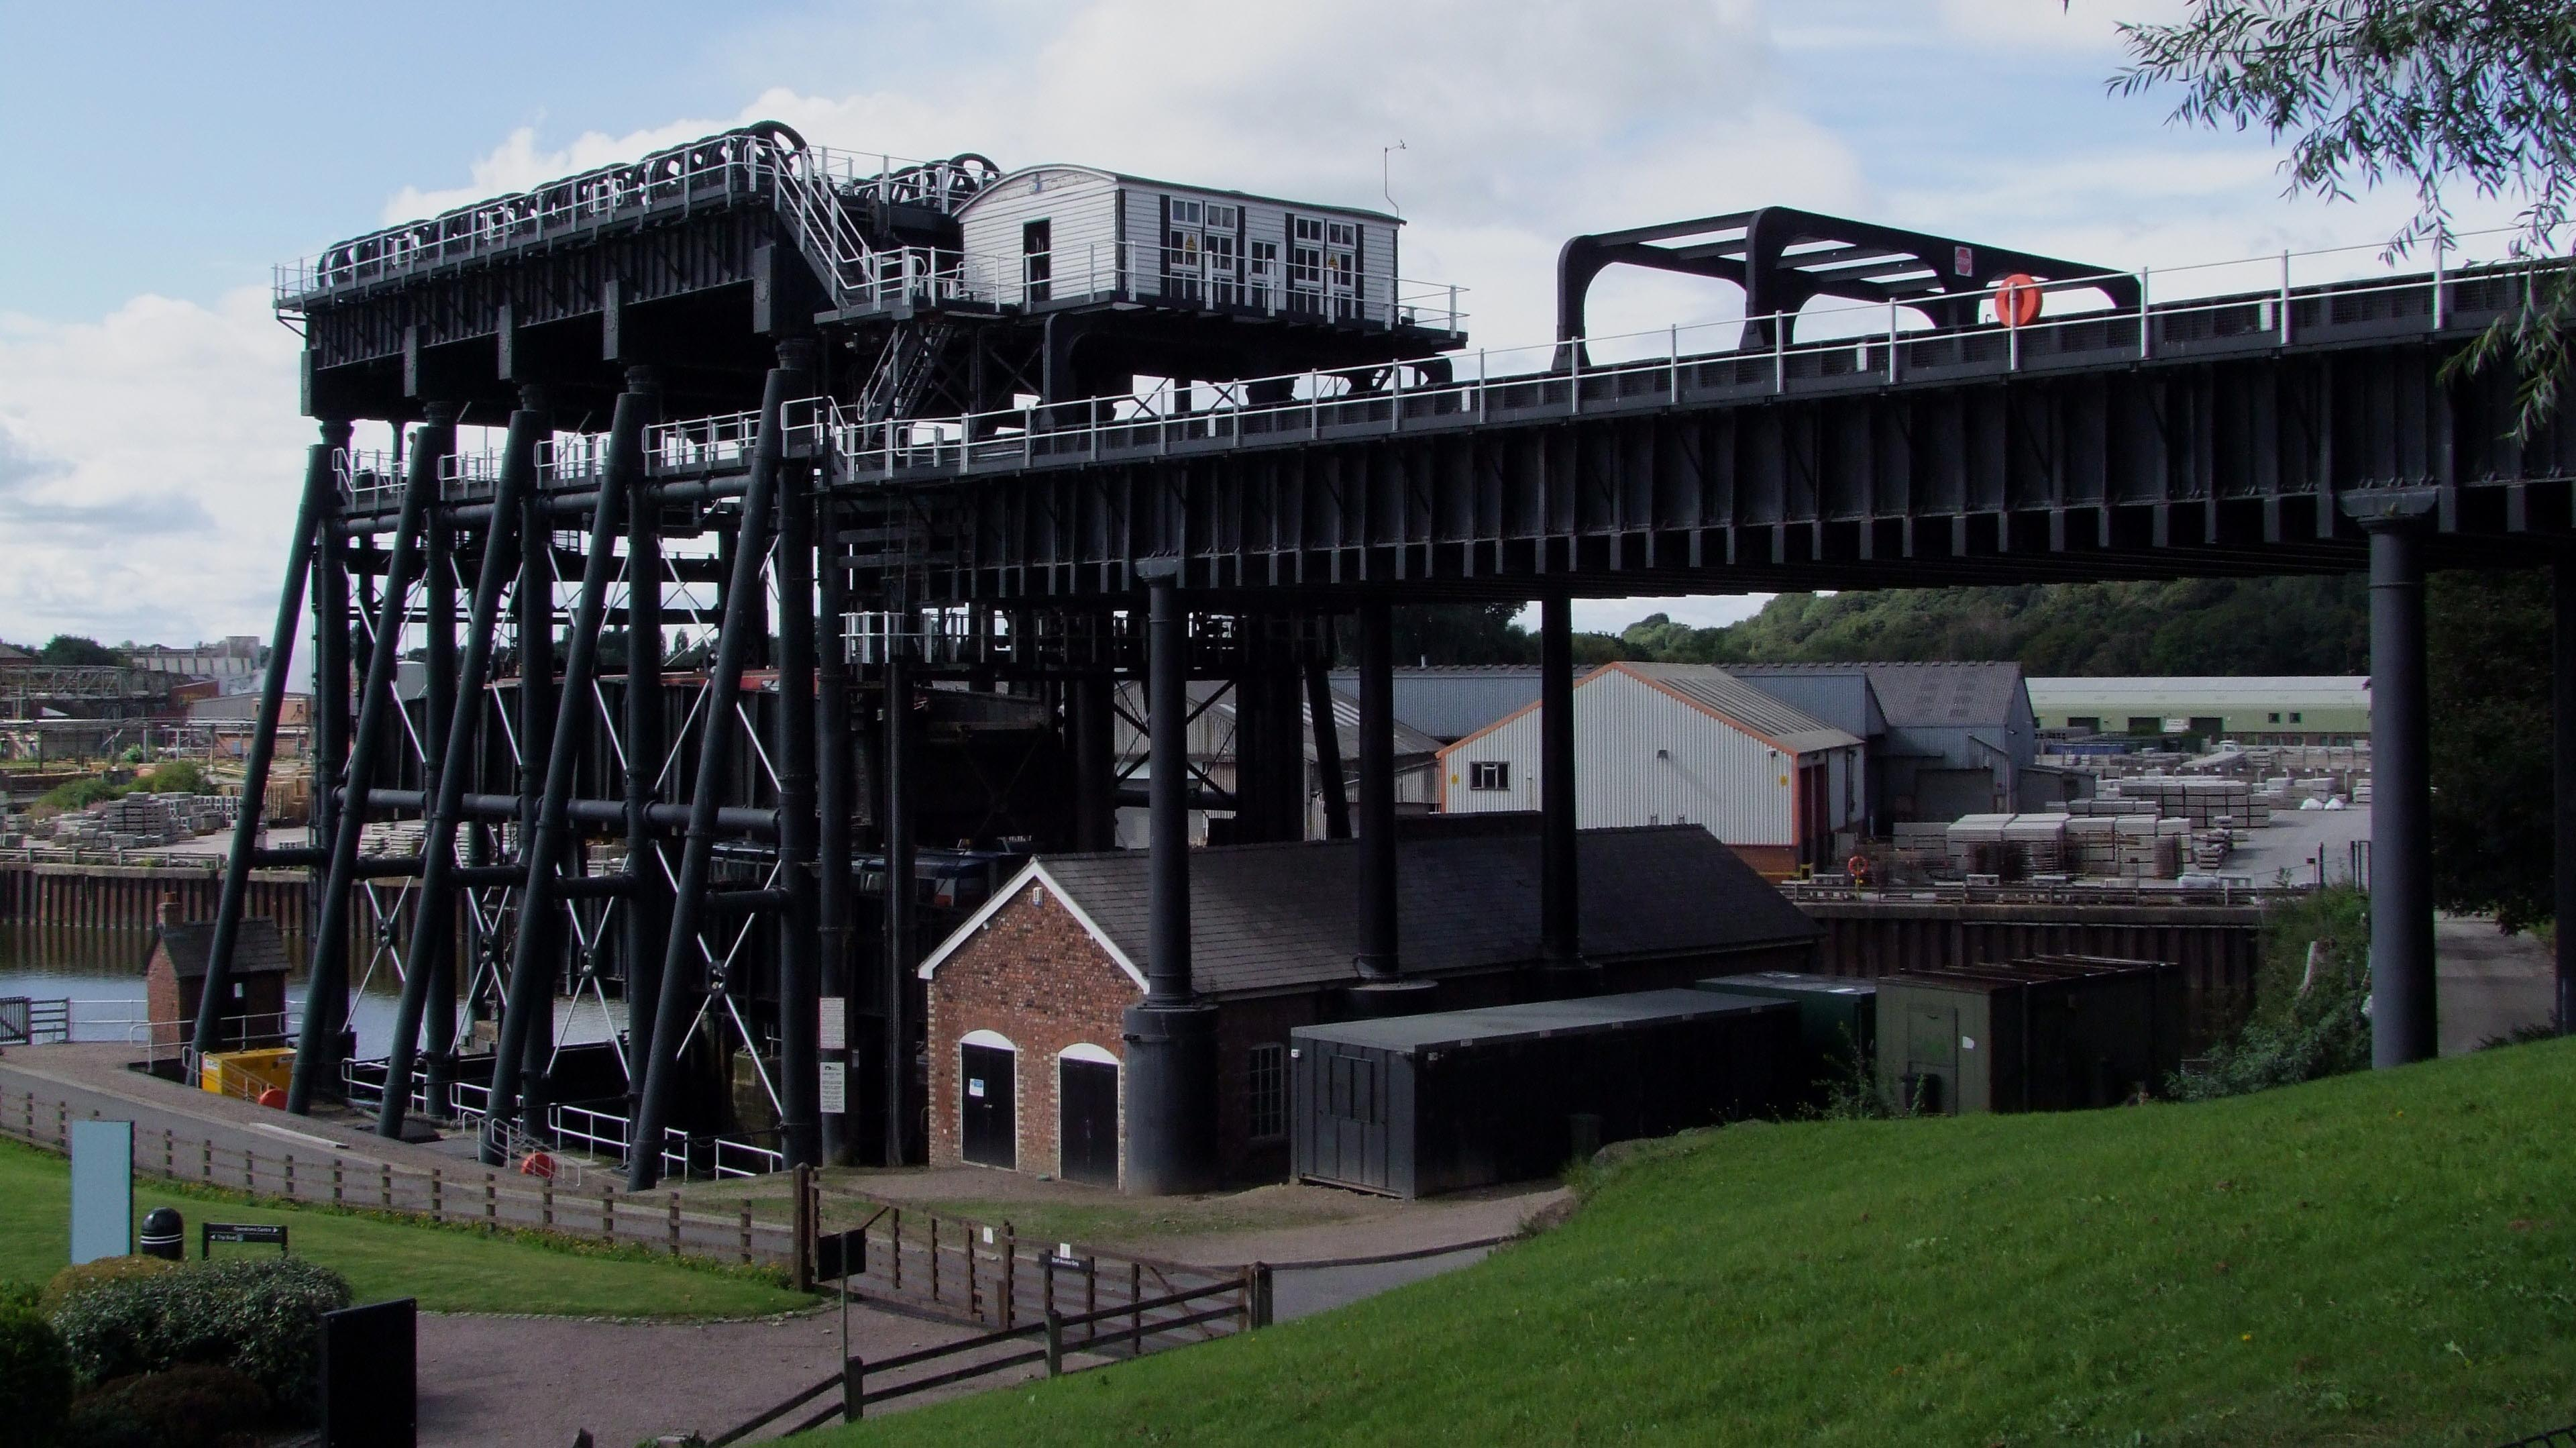 Anderton Boat Lift on the Trent & Mersey Canal, UK